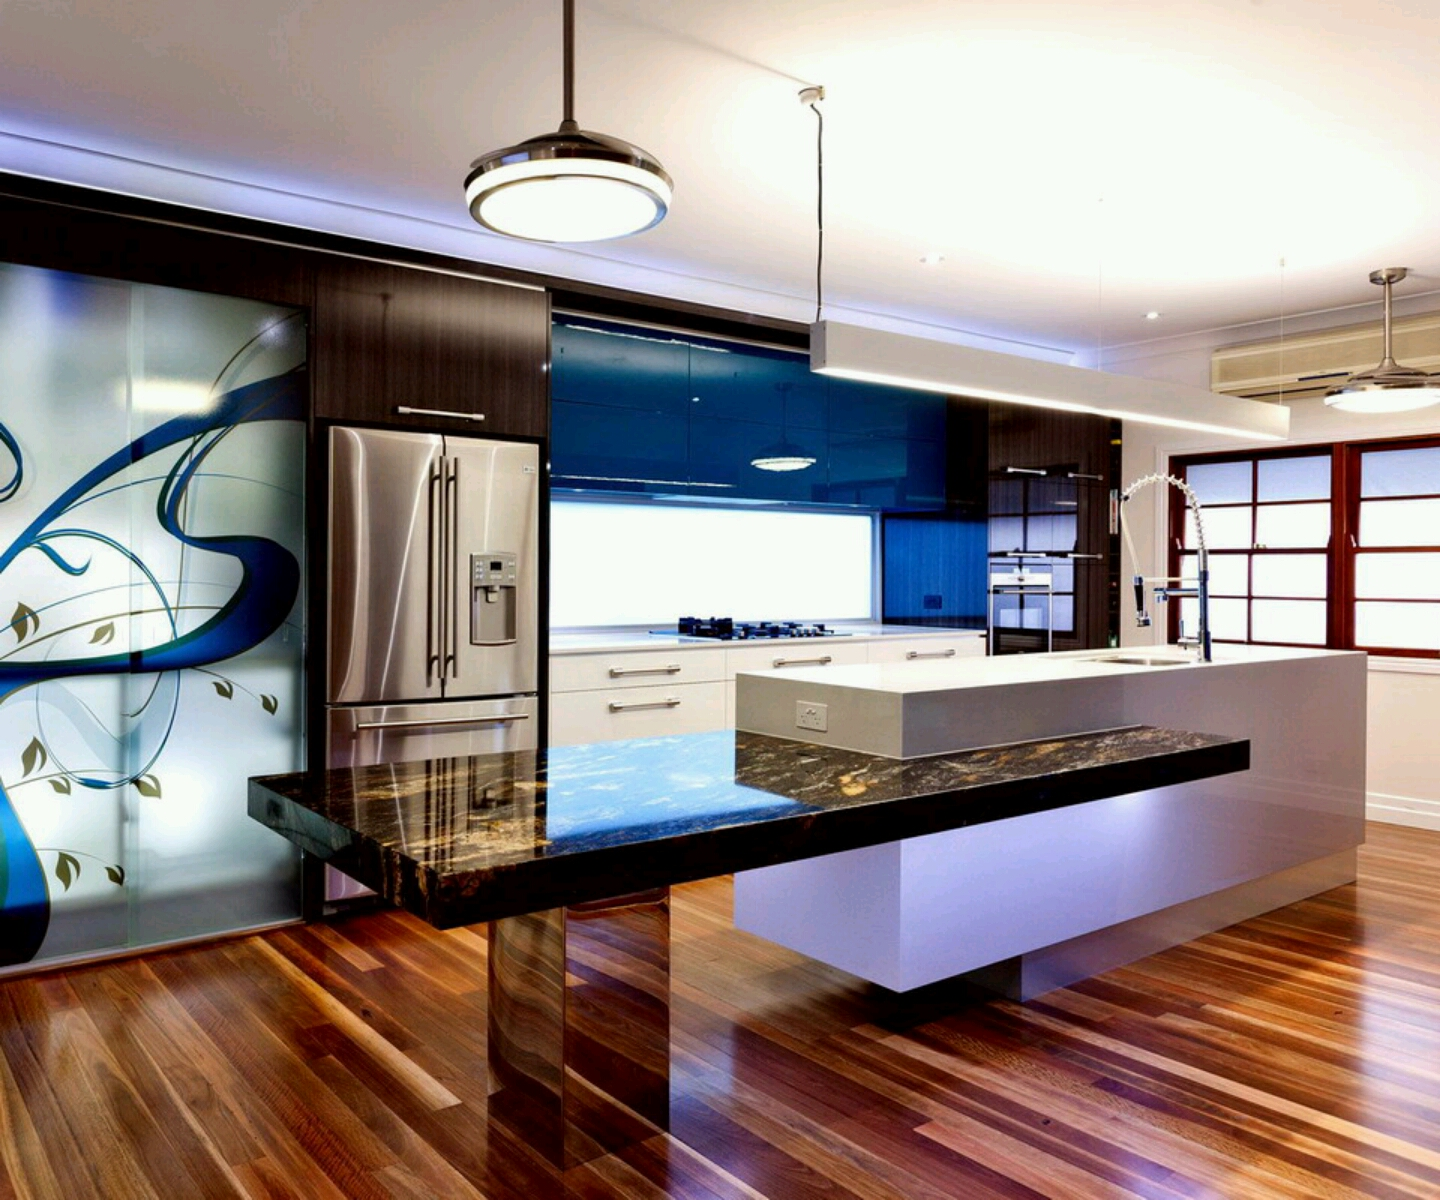 Ultra modern kitchen designs ideas new home designs for Kitchen interior design styles